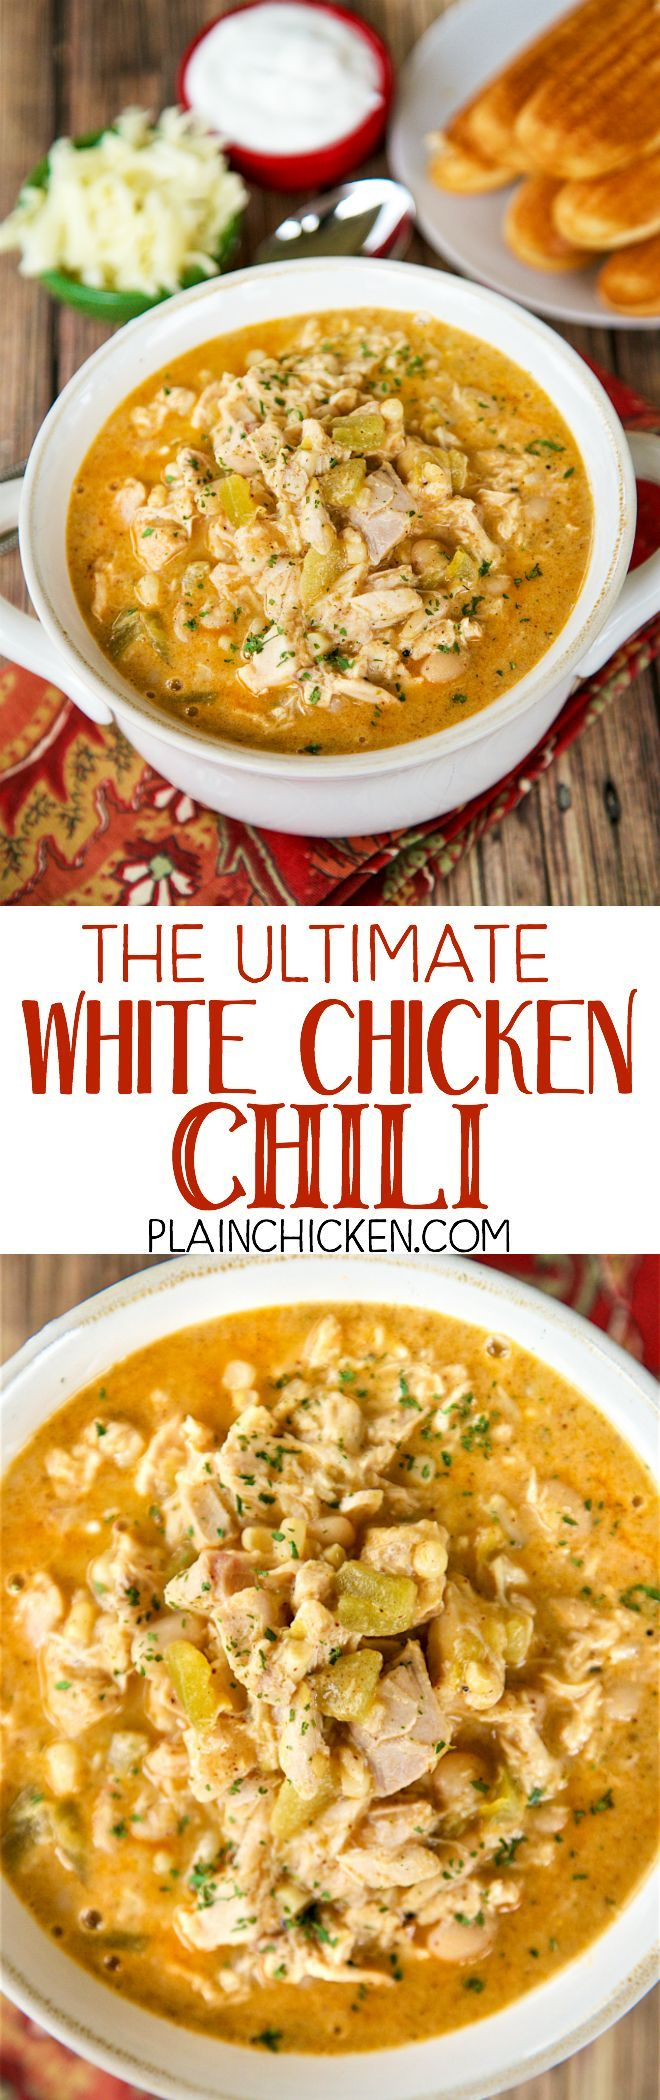 The Ultimate White Chicken Chili - the BEST of the BEST White Chicken Chilis! SO good and ready to eat in under 20 minutes! Rotisserie chicken, white beans, corn, green chilies, chicken broth, onion, garlic, cumin, chili powder, half-and-half, pepper jack cheese. Top with some sour cream and extra cheese. Makes a ton. Freeze leftovers for a quick meal later.